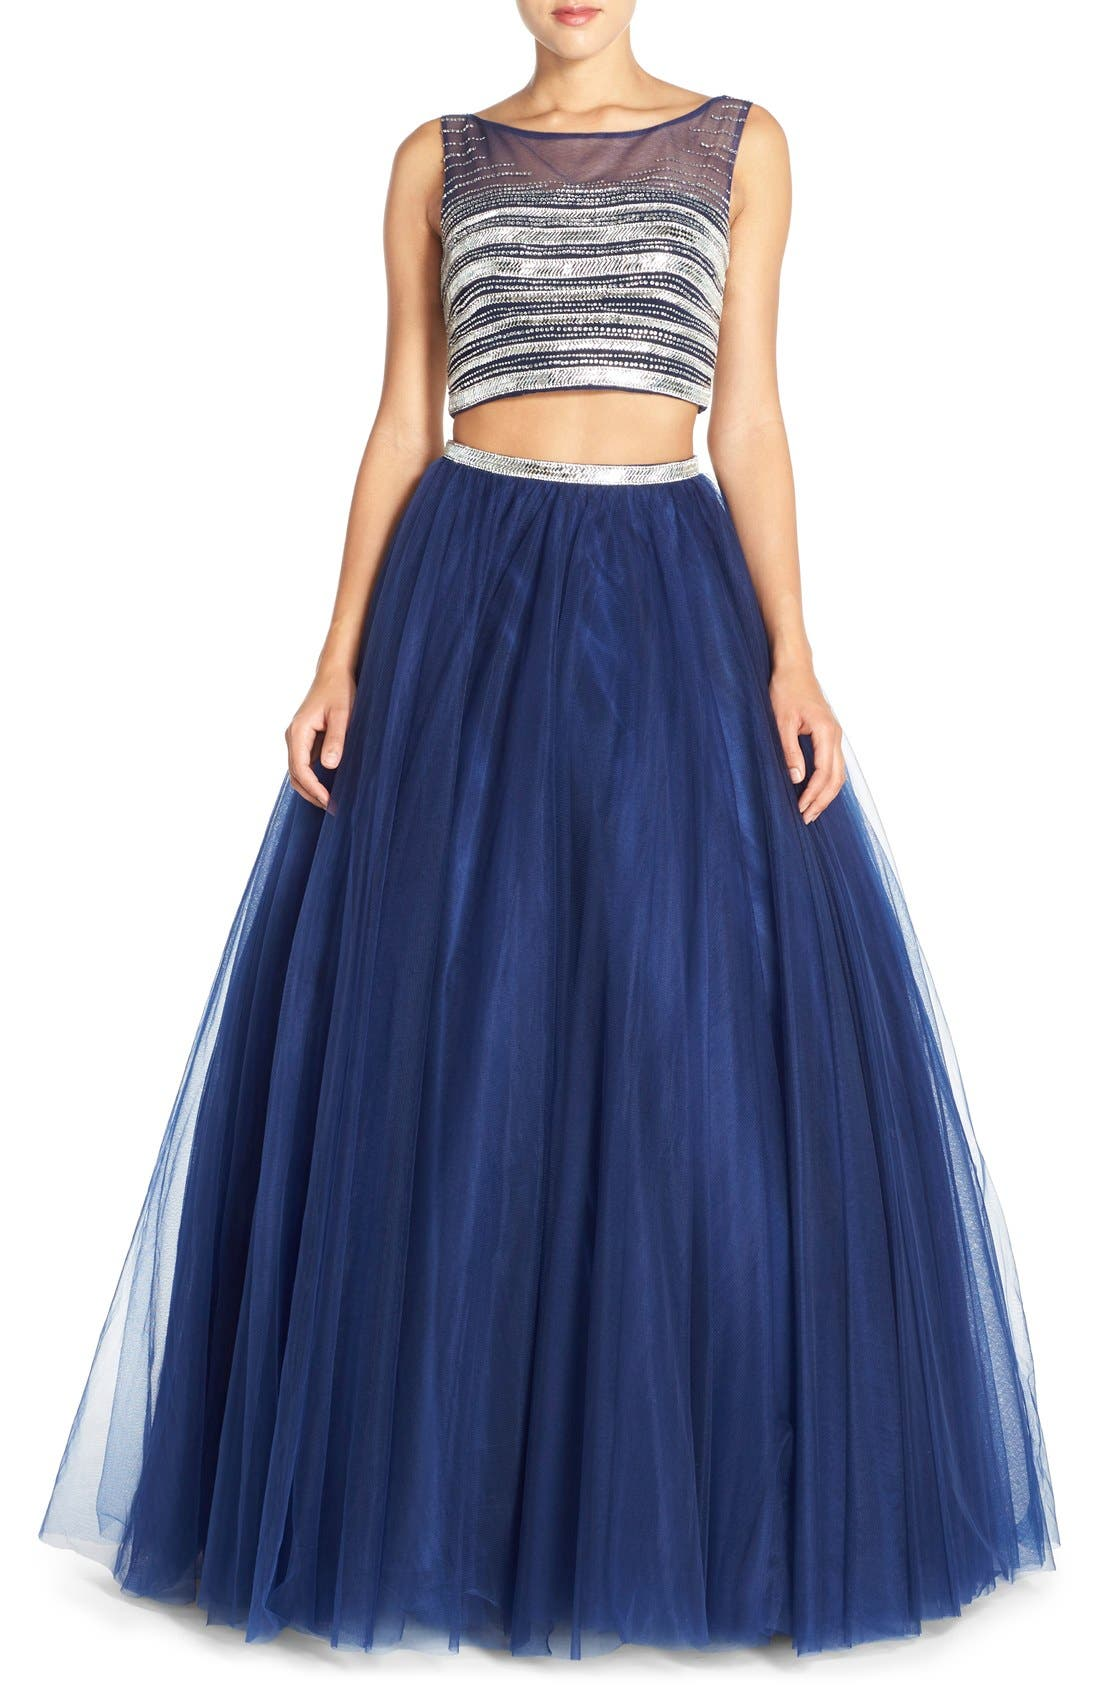 Alternate Image 1 Selected - JVN by Jovani Embellished Top & Mesh Two-Piece Ballgown